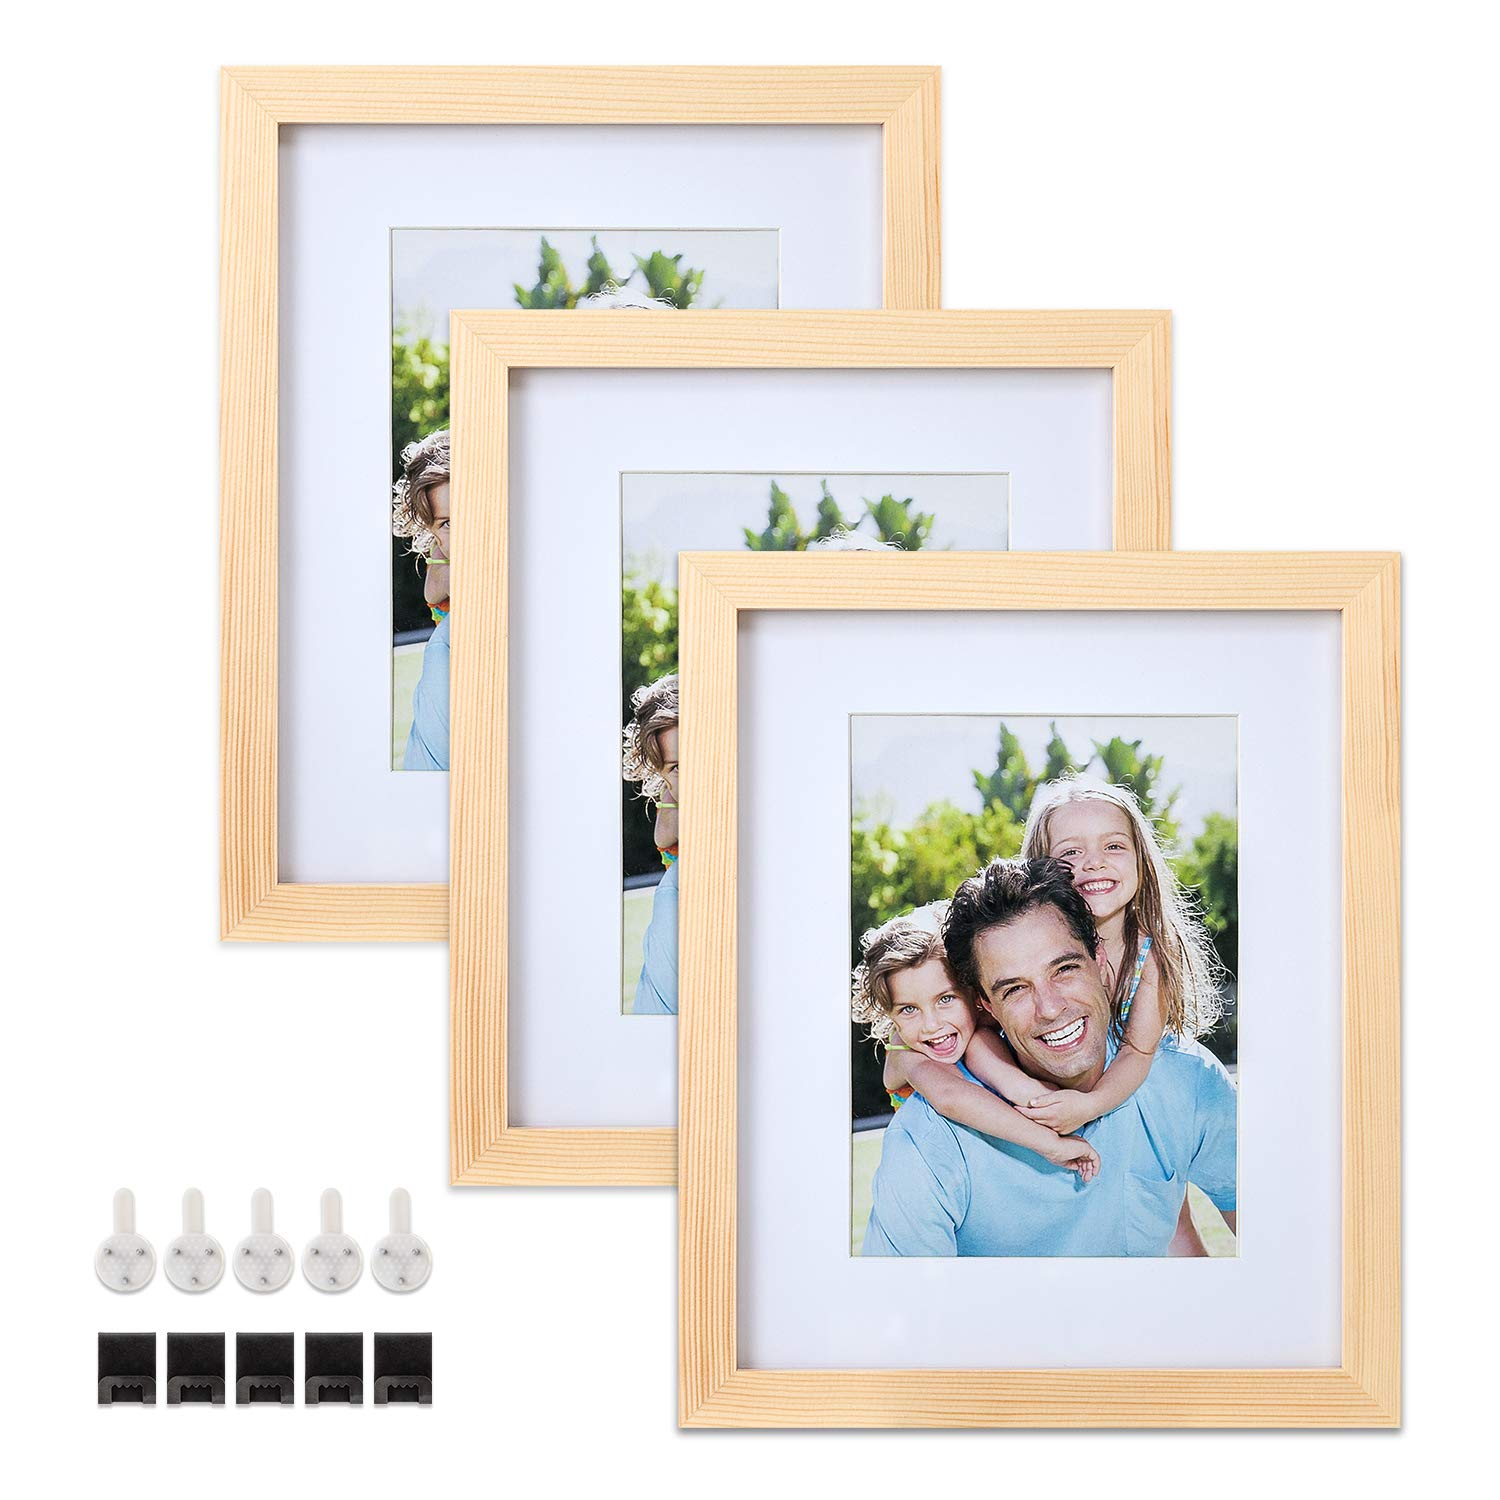 Sindcom 8x10 Solid Wood Picture Frames, 3 Pack, Photo Frame Set with Mat and Glass Cover, Natural Wood Color, Mounting Hardware Included, for Wall or Tabletop Display by Sindcom